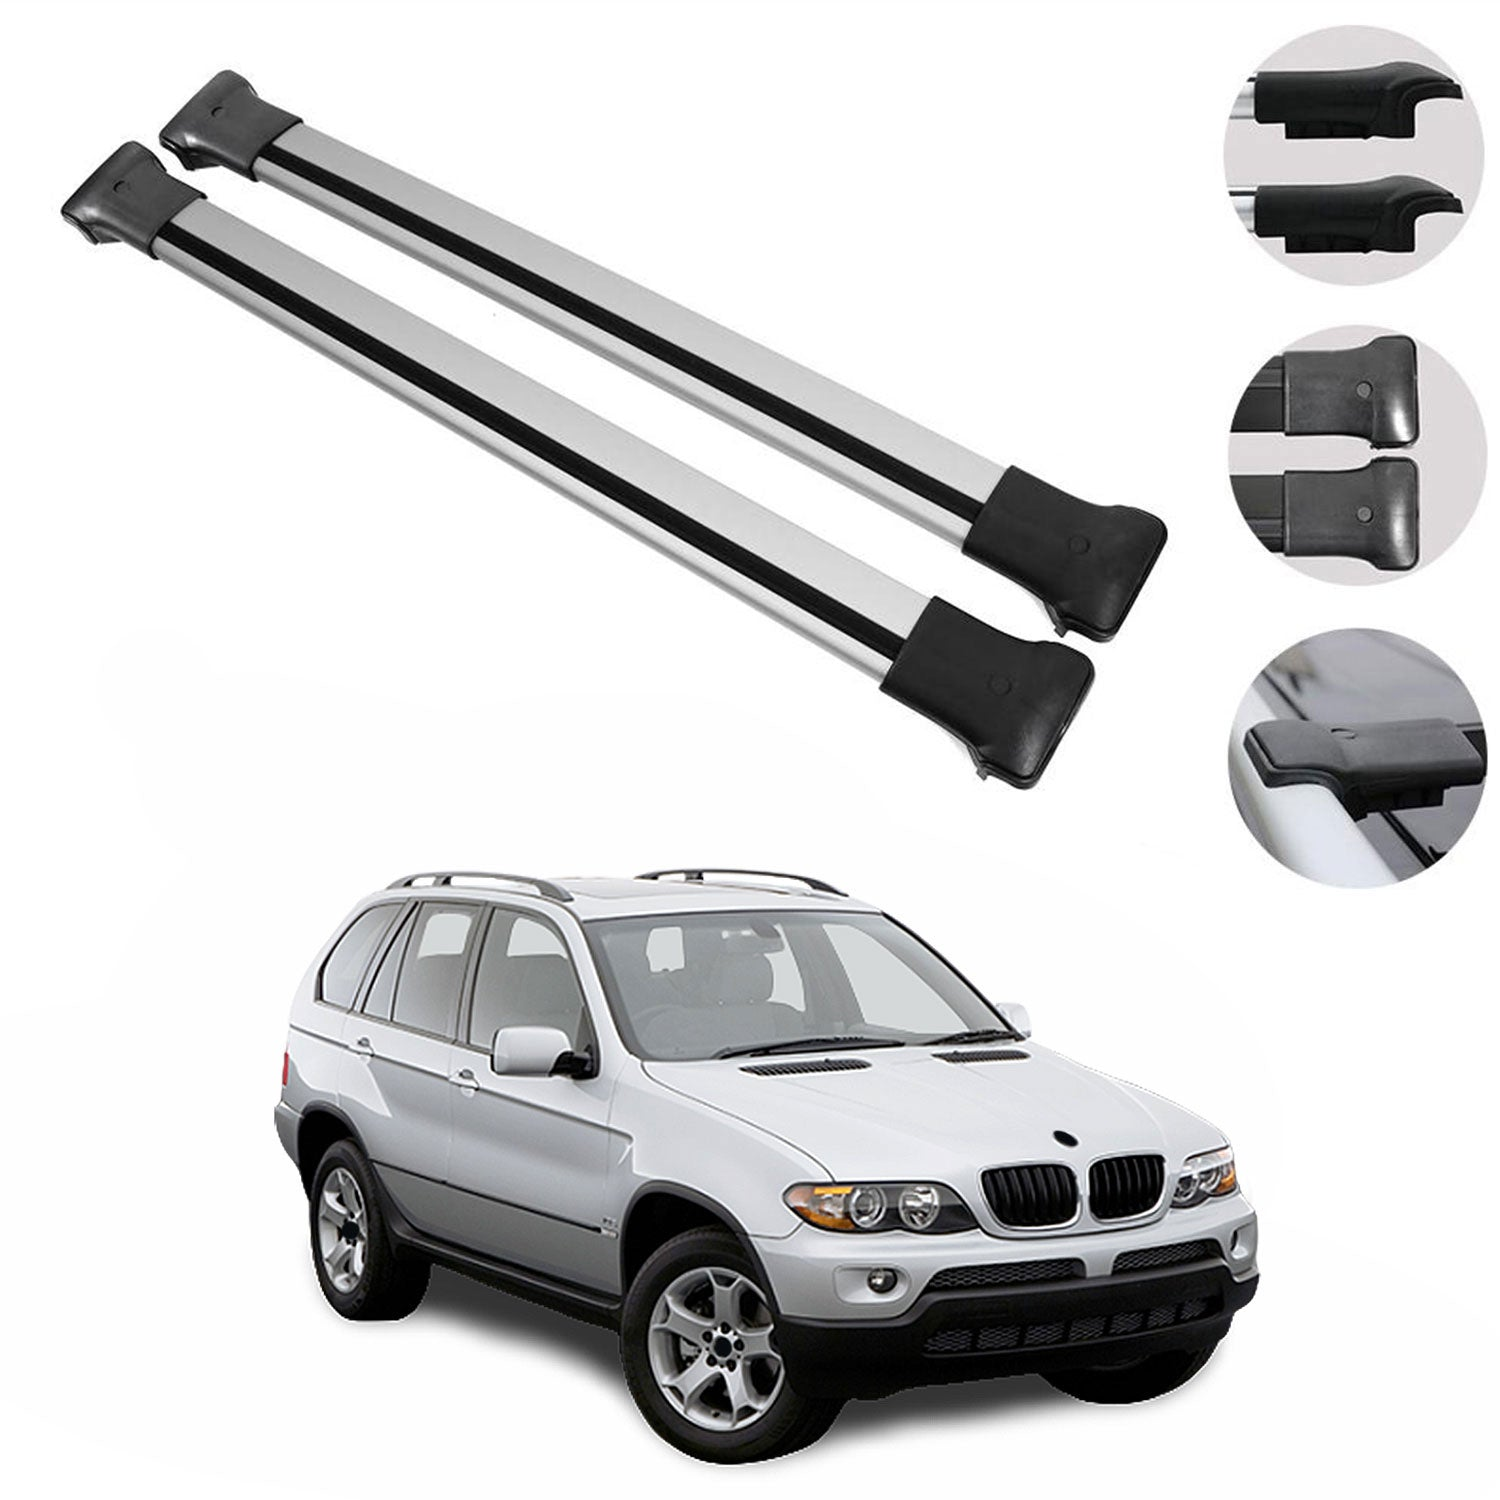 Roof Rack Cross Bars Luggage Carrier Silver Set Alu For Bmw X5 2000 20 Omac Shop Usa Auto Accessories